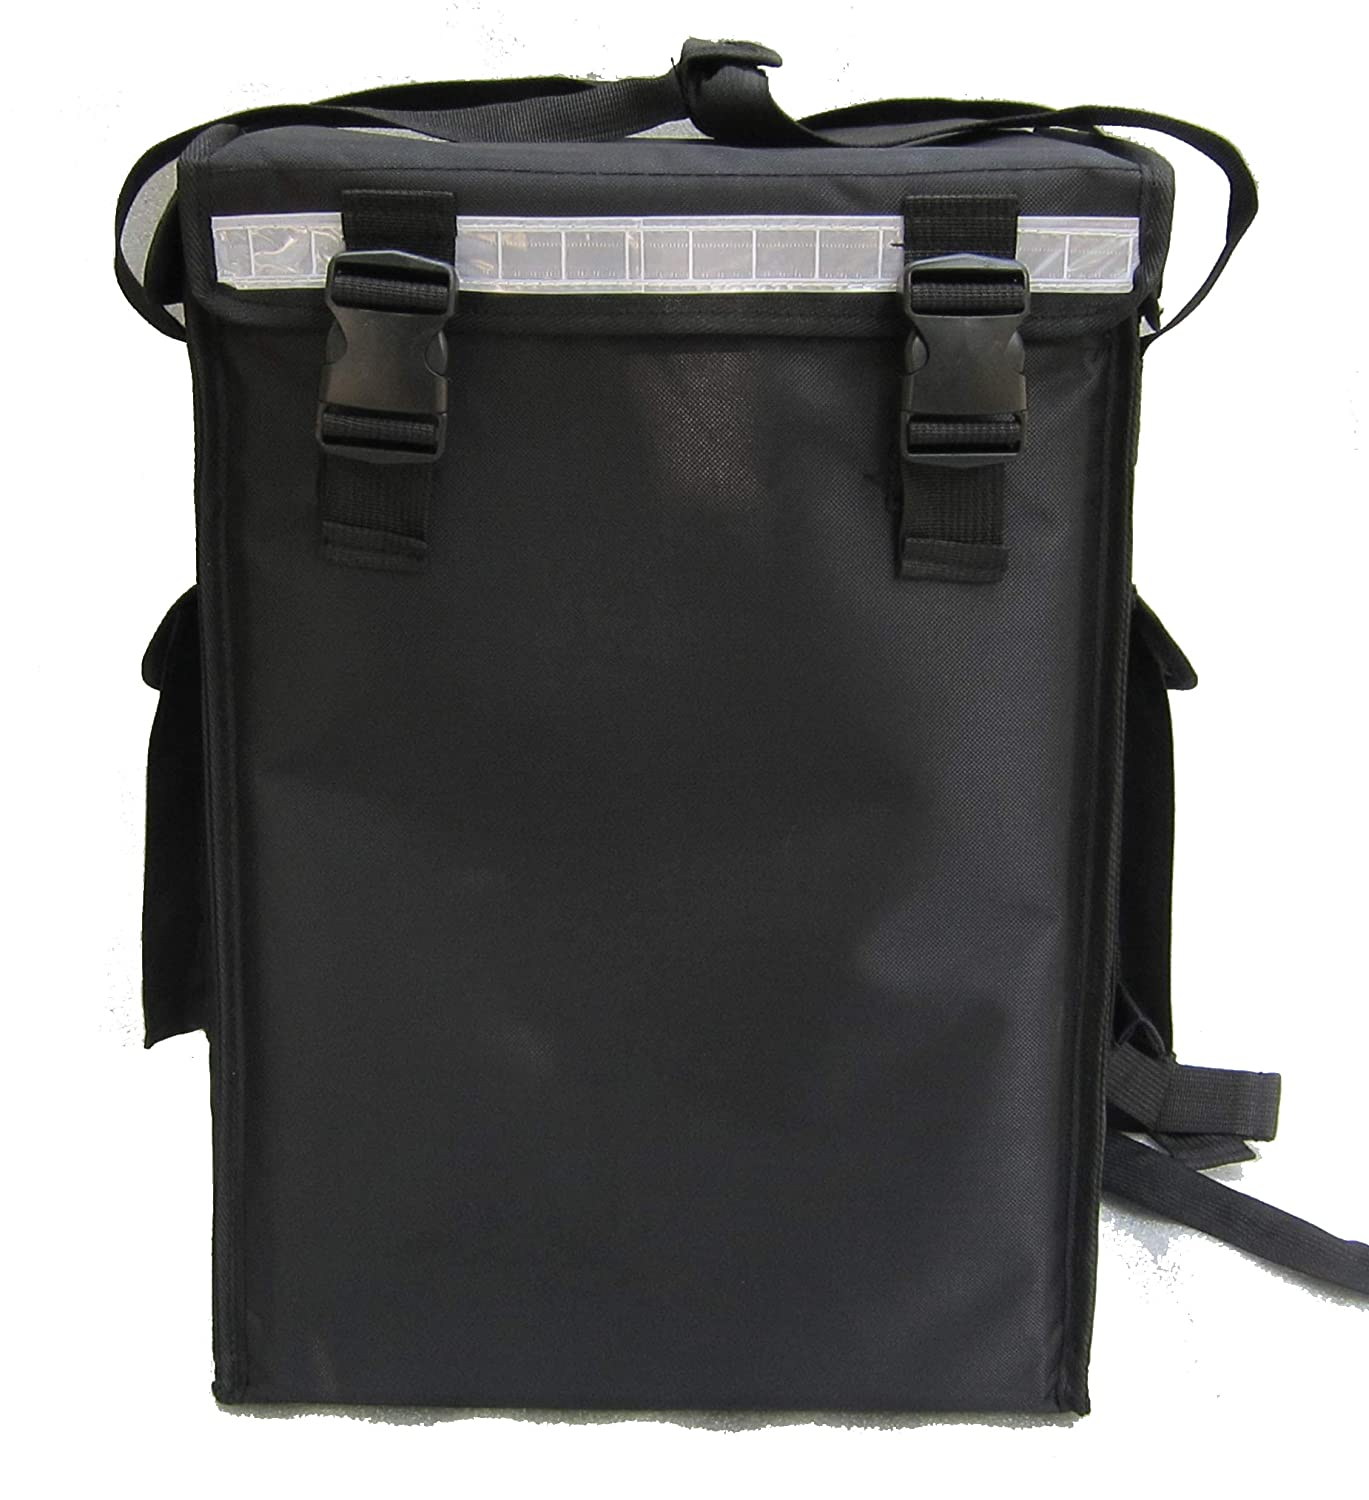 Packir PK-34V Small Food Delivery Backpack 13